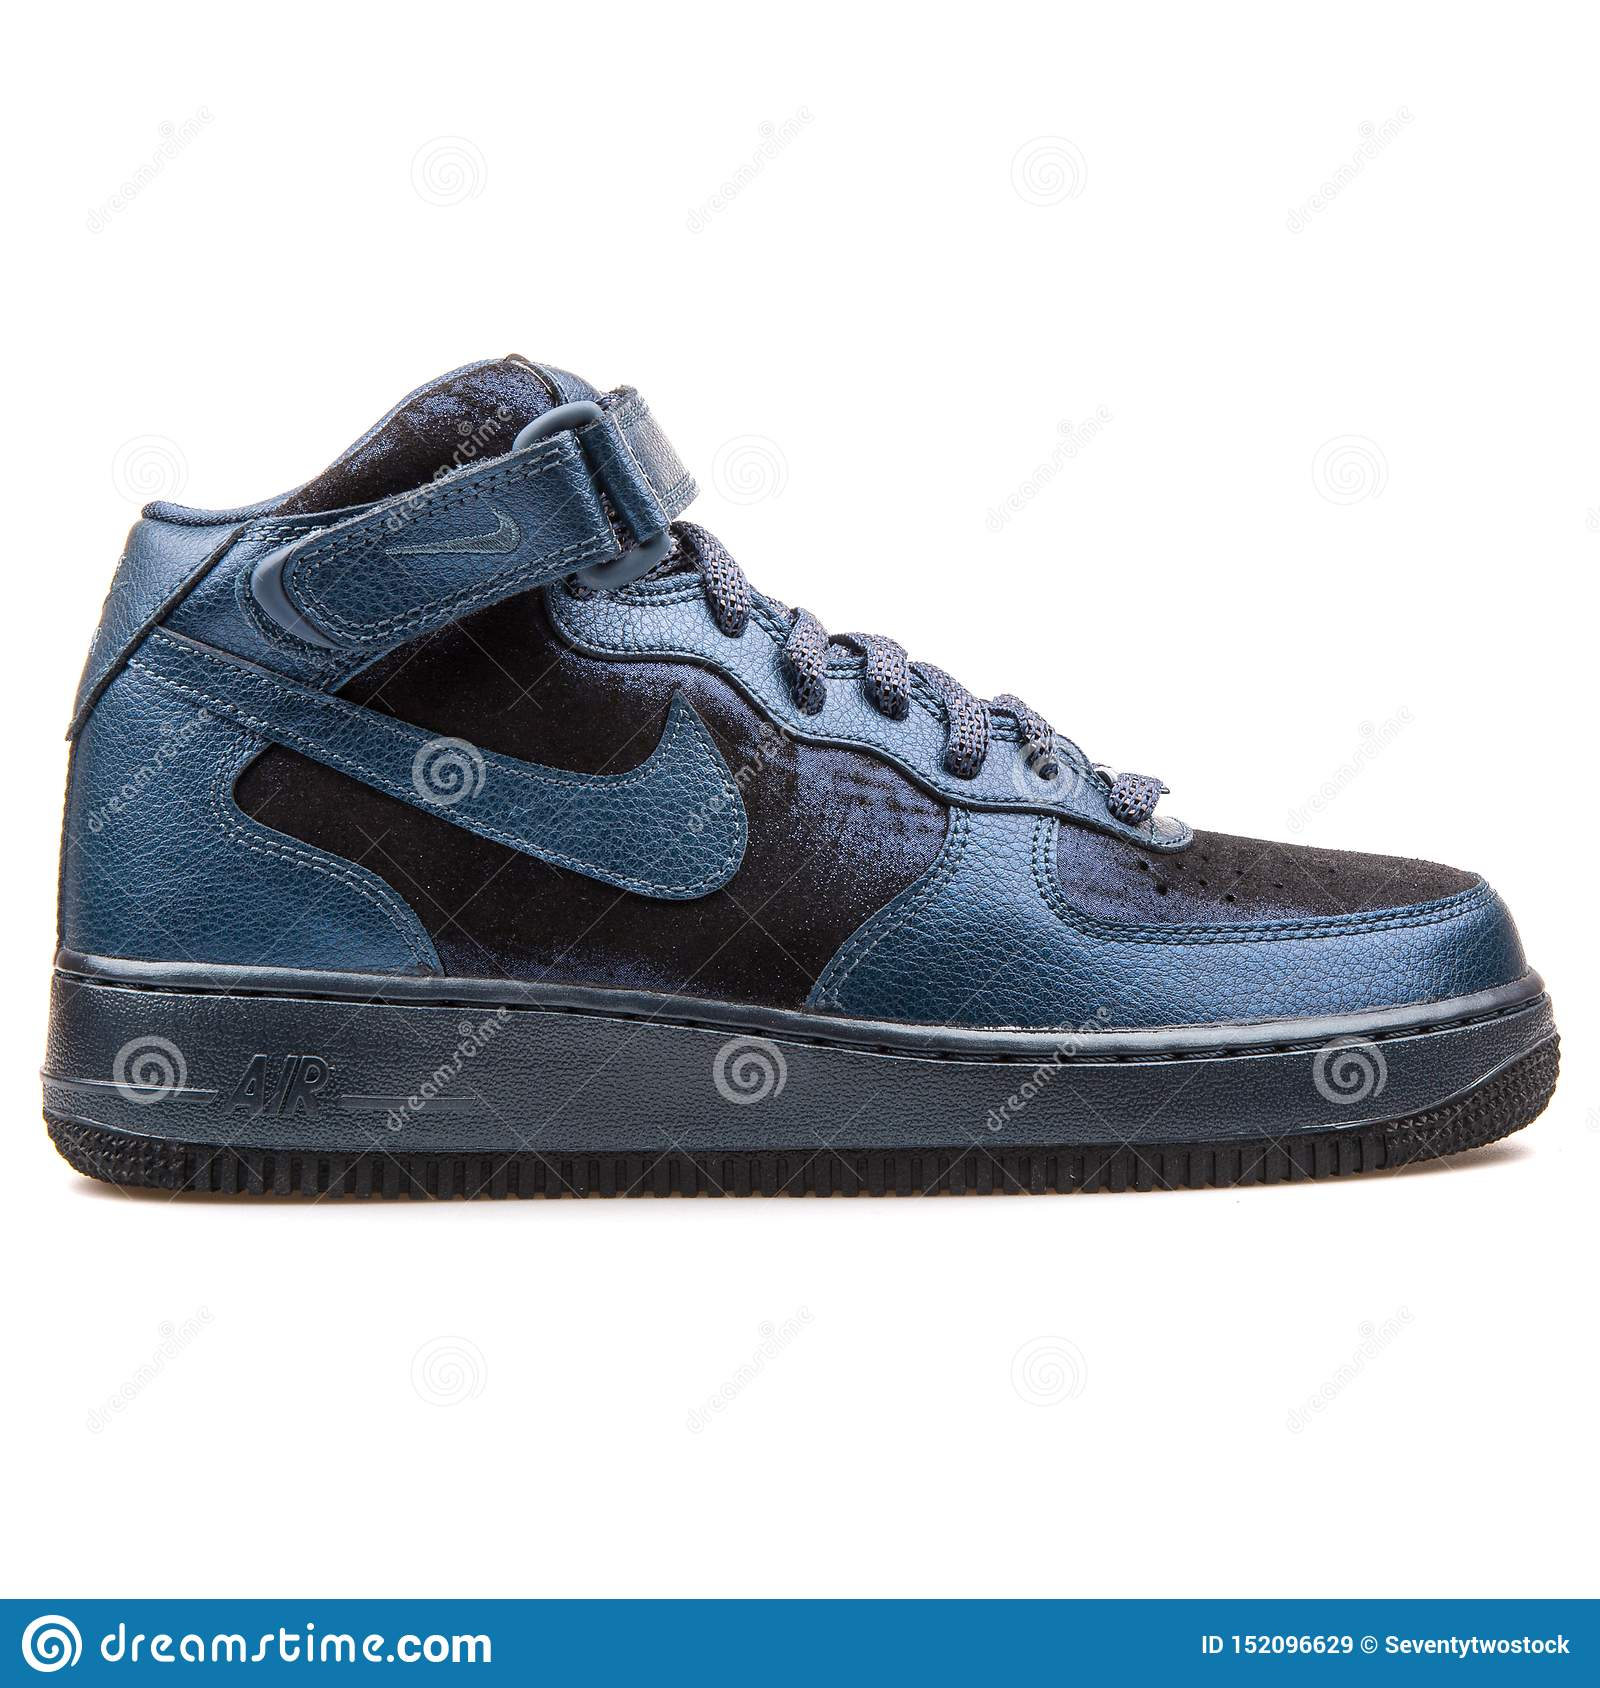 Nike Air Force 1 07 Mid Premium Metallic Navy Blue And